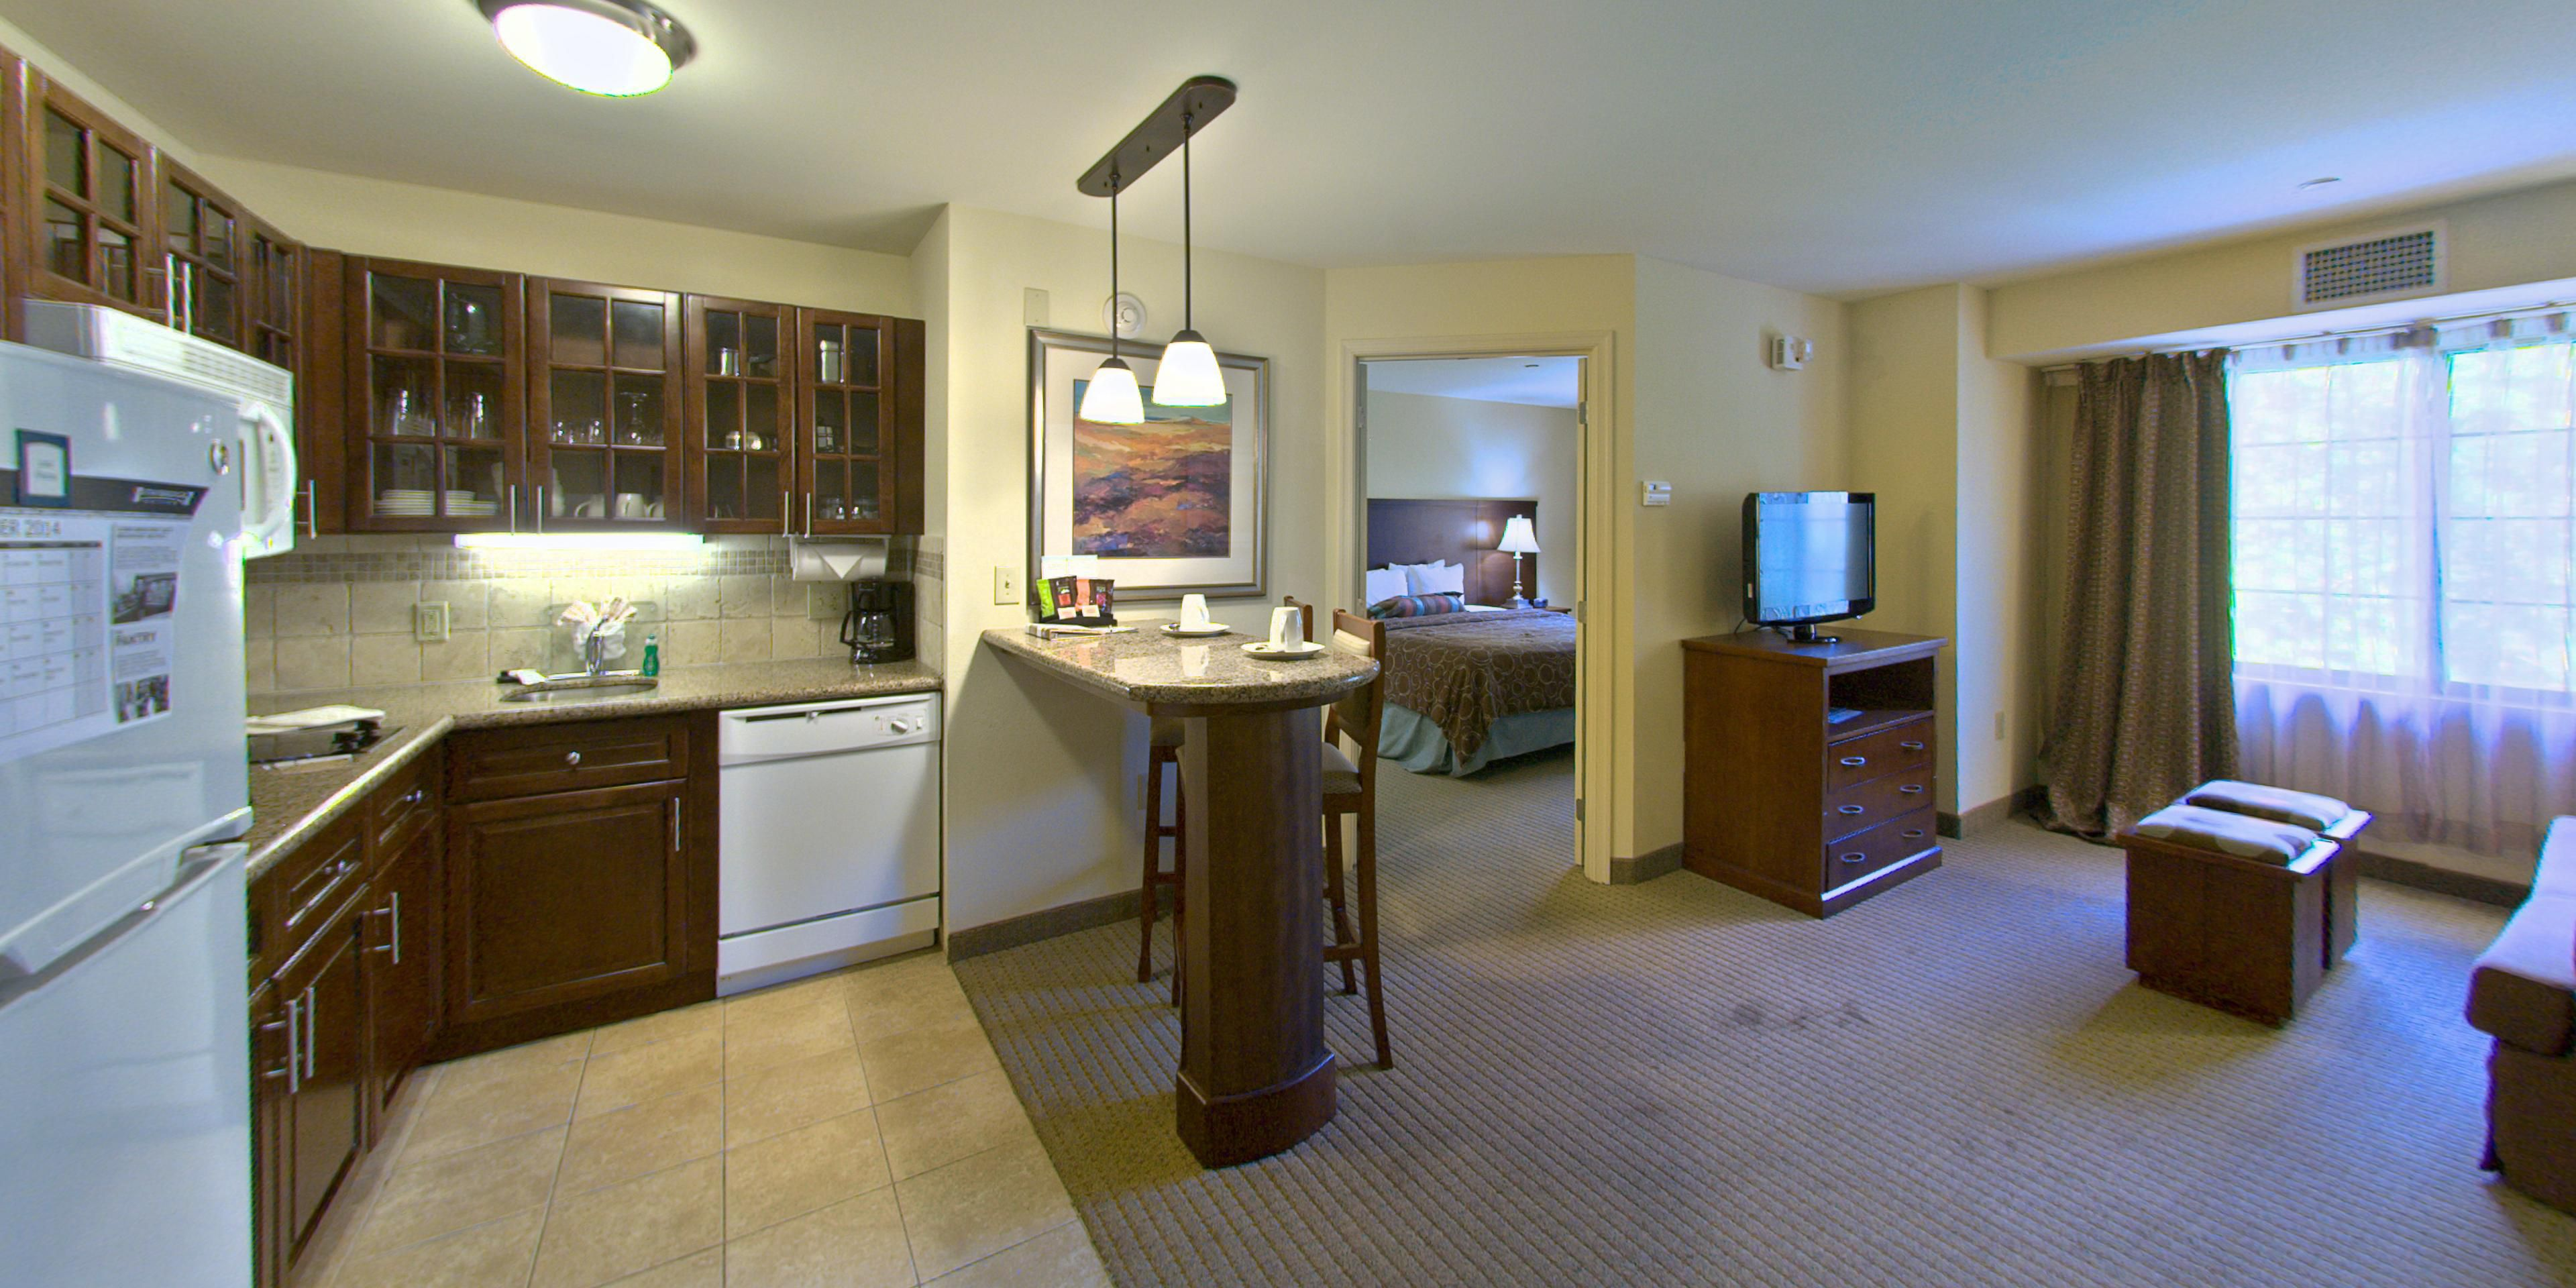 East Stroudsburg Hotels: Staybridge Suites Stroudsburg (East) Poconos    Extended Stay Hotel In East Stroudsburg, Pennsylvania